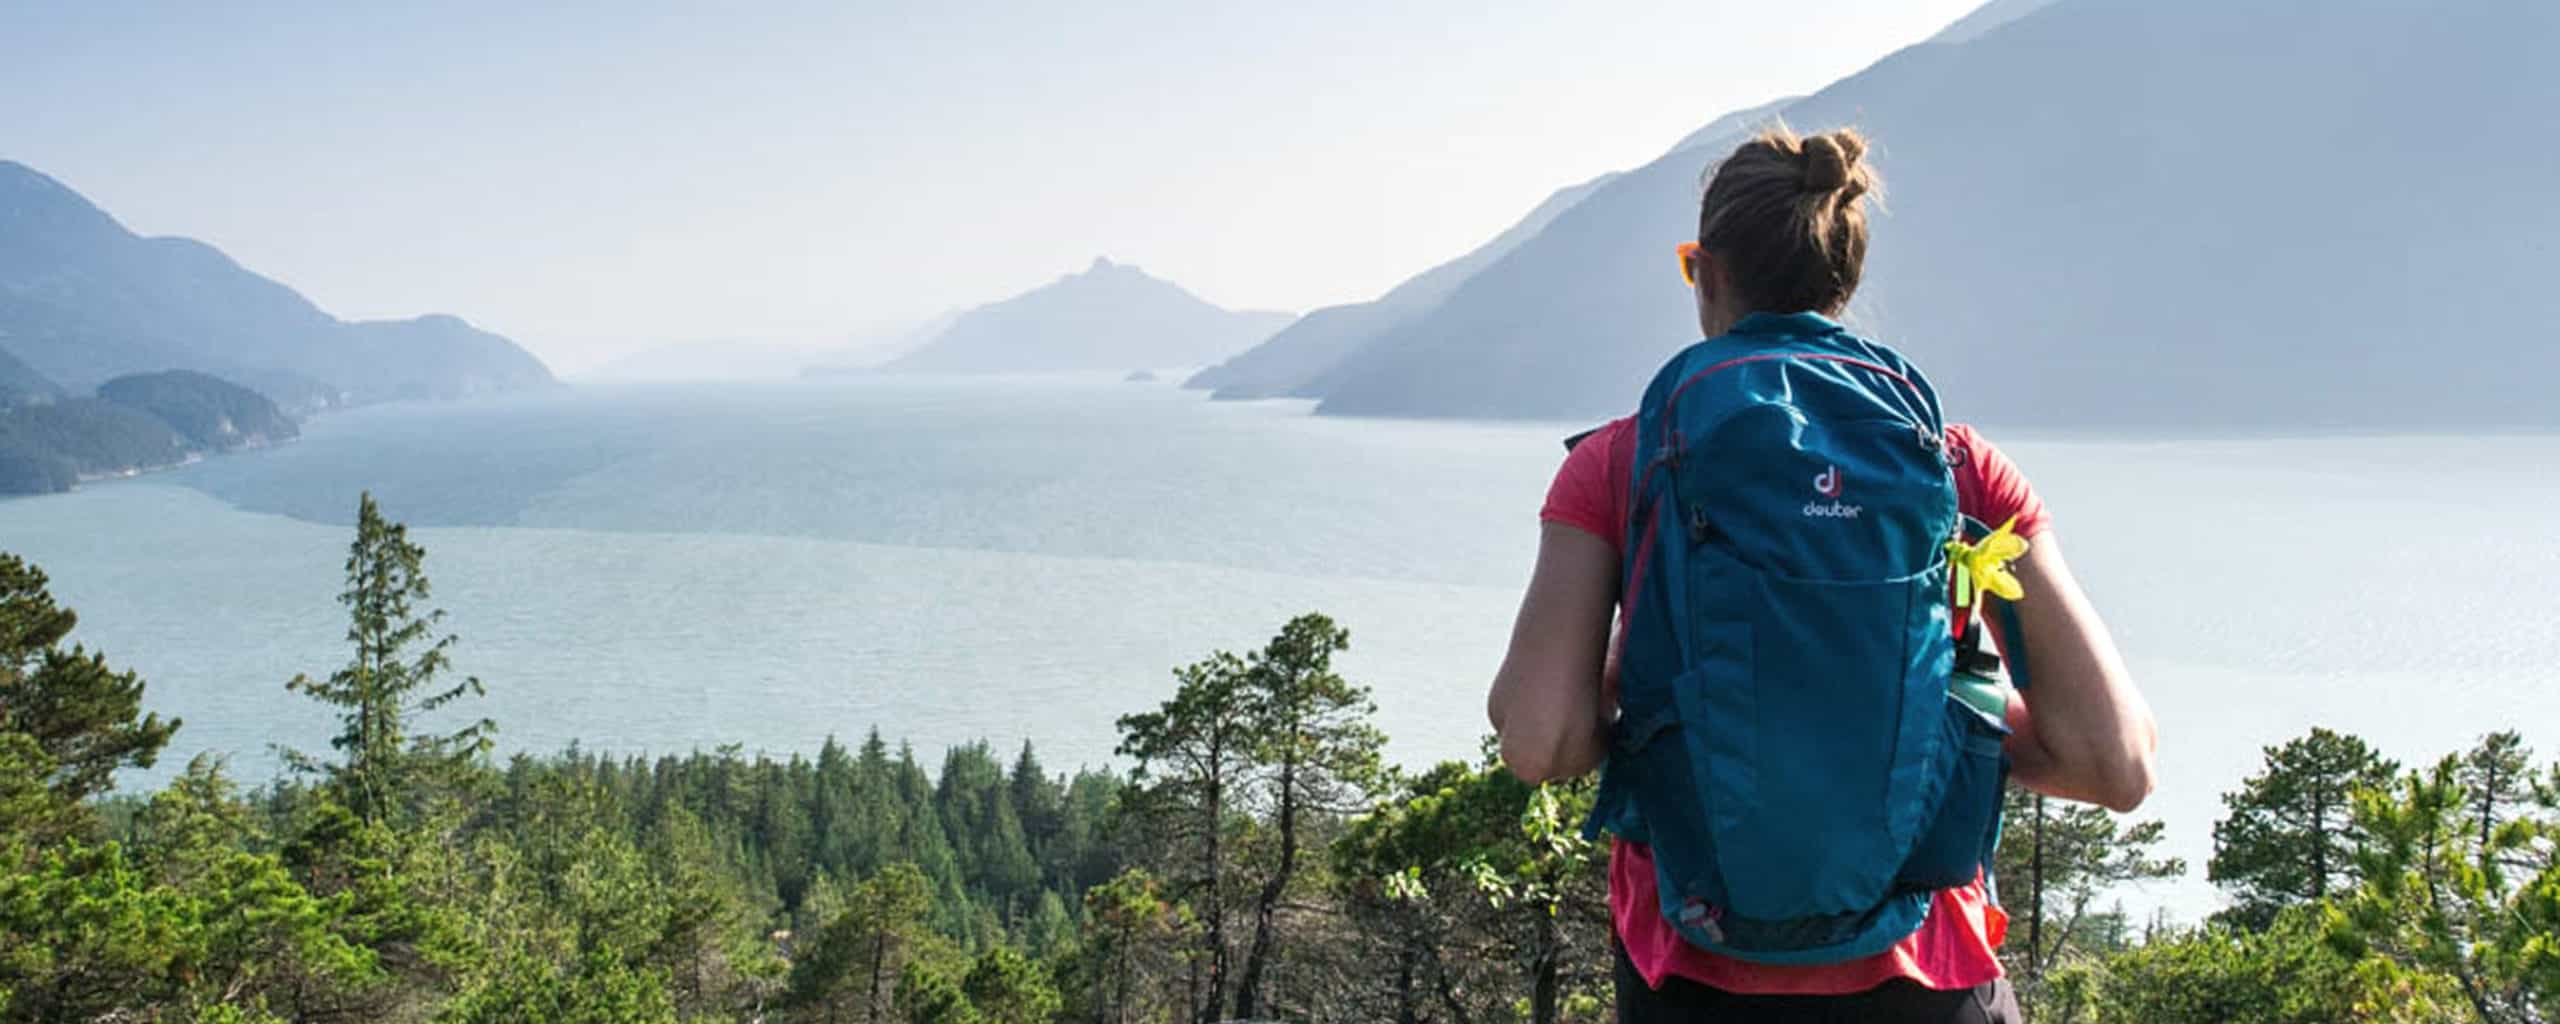 Adventures Close To Home with the Deuter Futura 26 SL